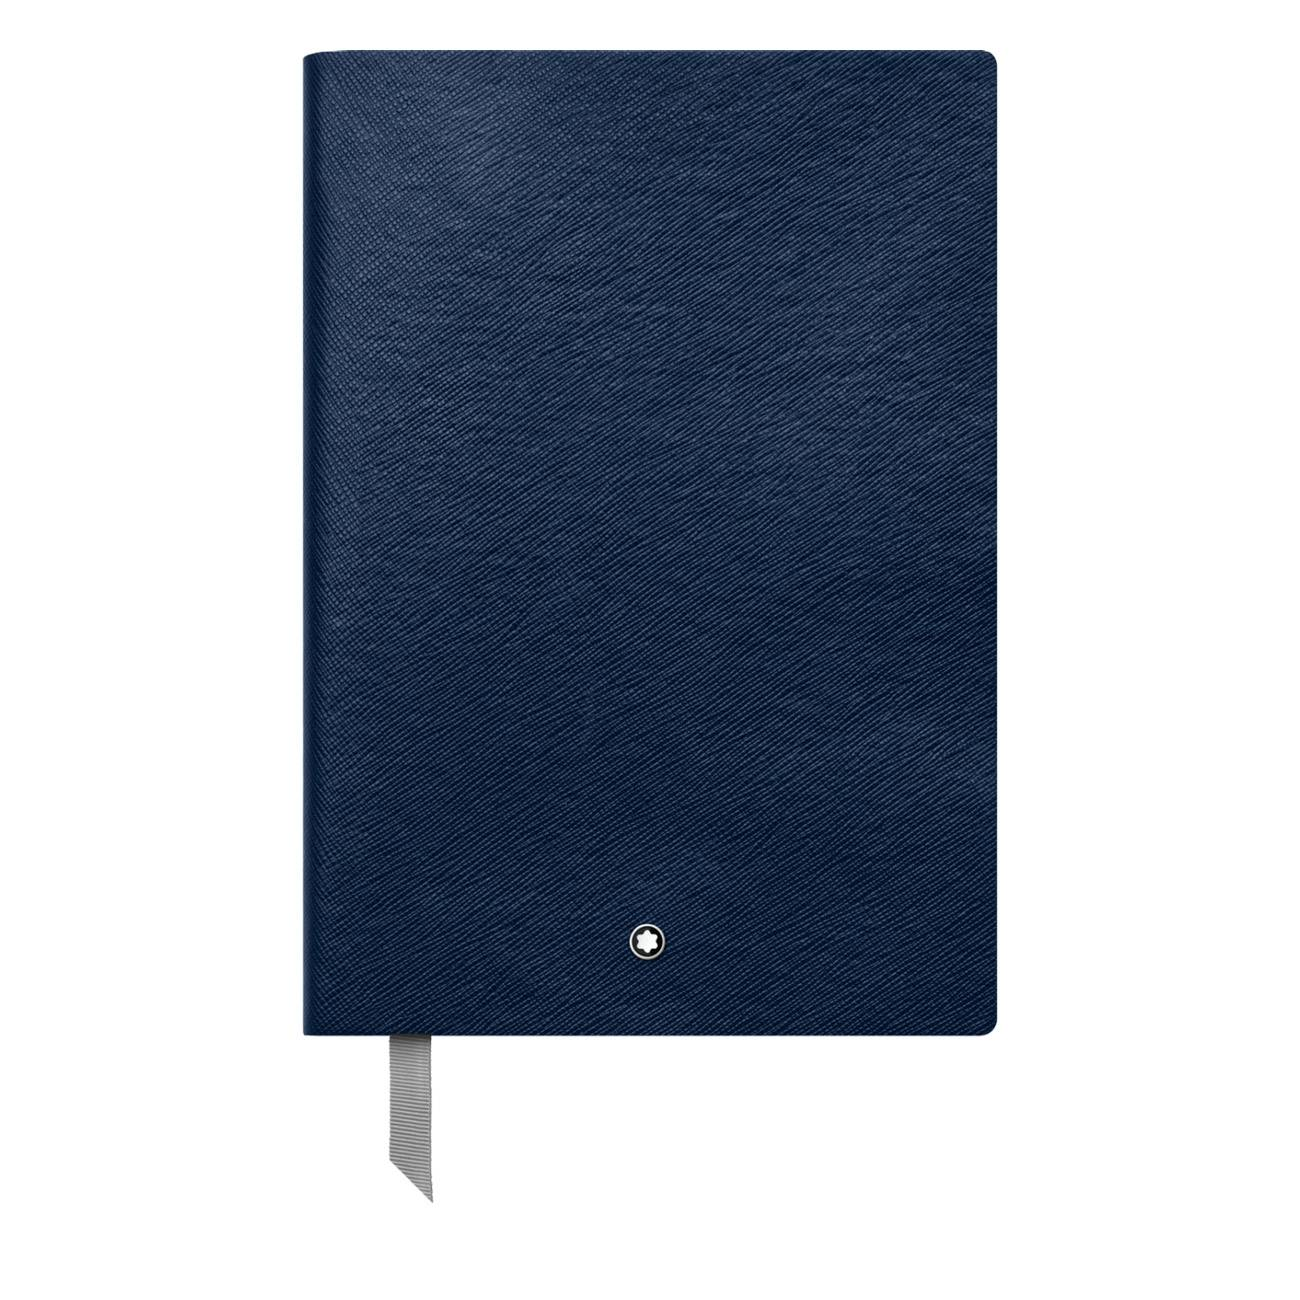 NOTEBOOK INDIGO LINED - 96 SHEETS